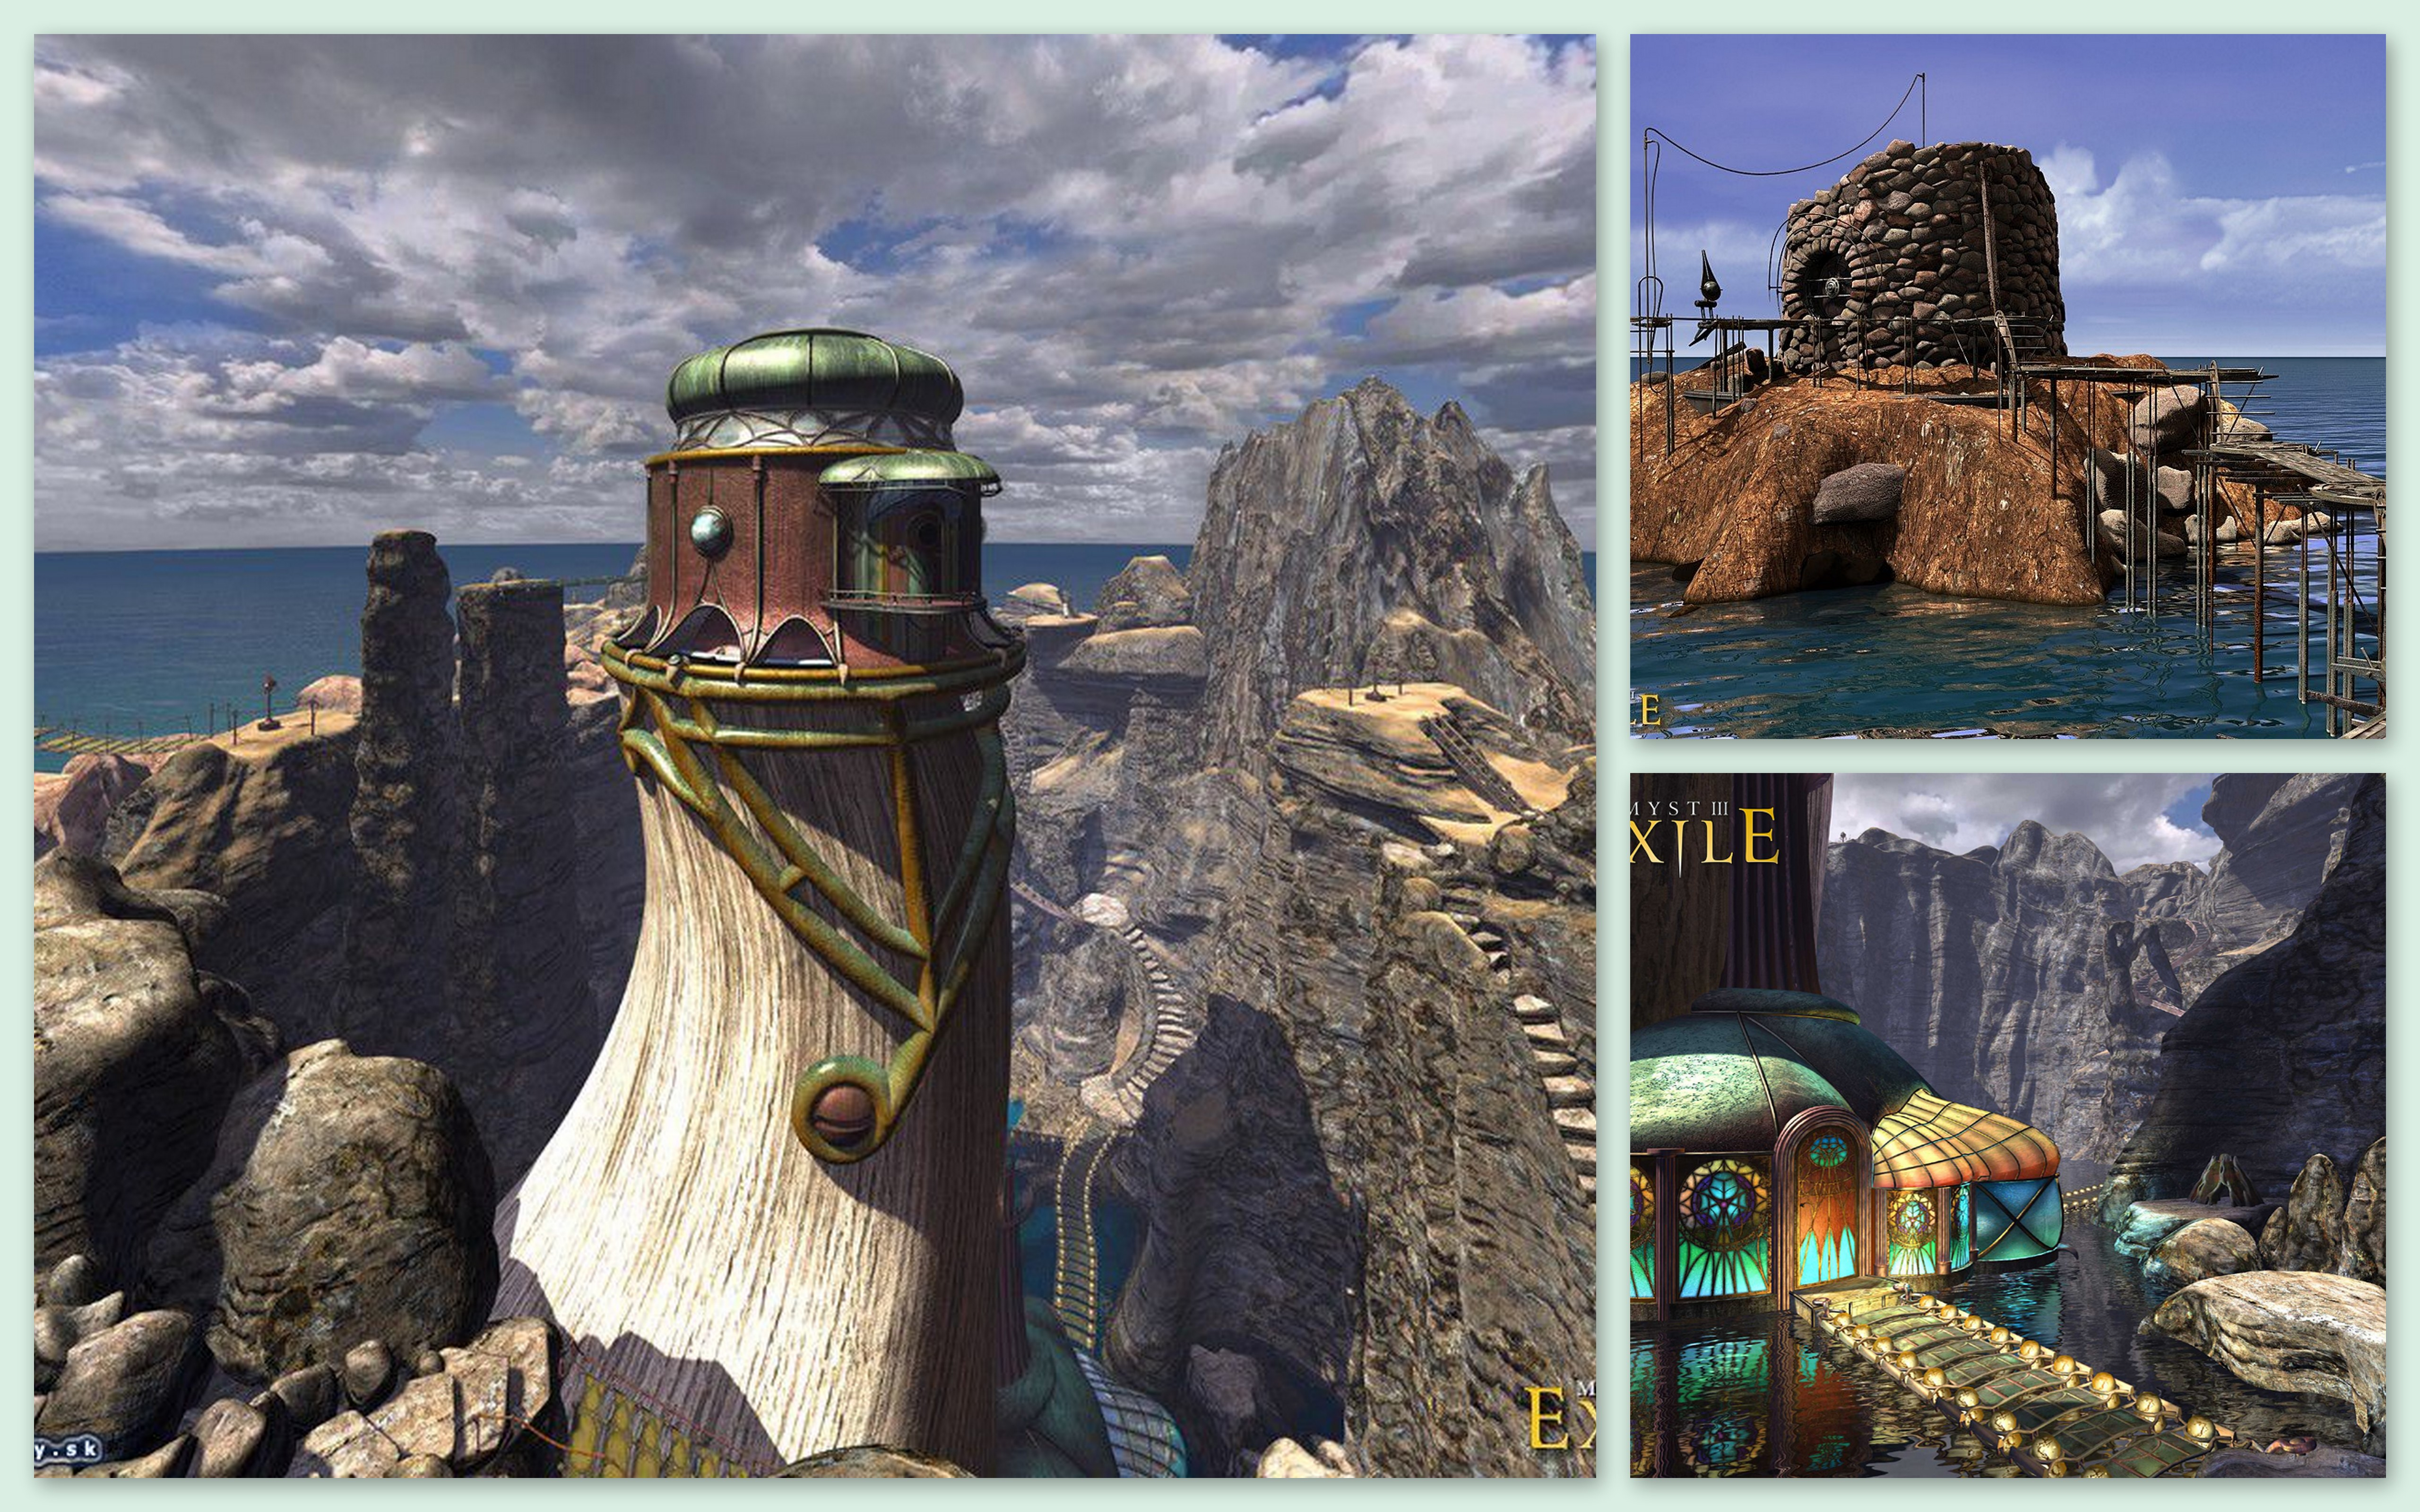 Riven The Sequel to Myst on